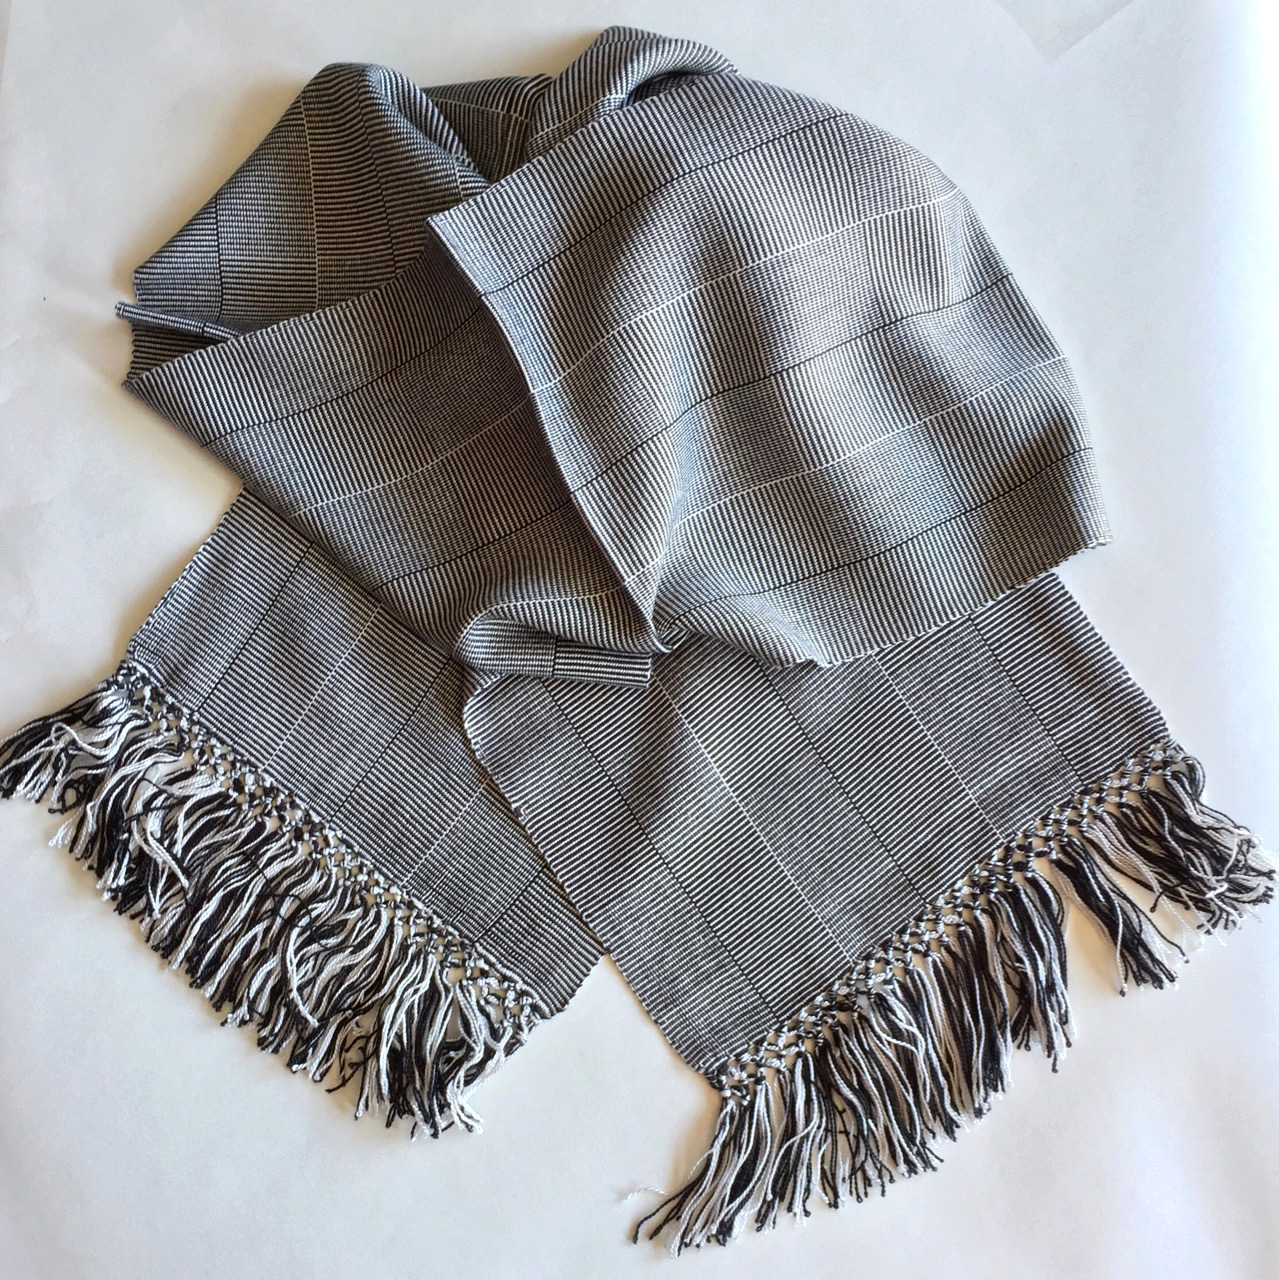 Black and White Log Cabin Weave - Lightweight Bamboo Handwoven Scarf 8 x 68